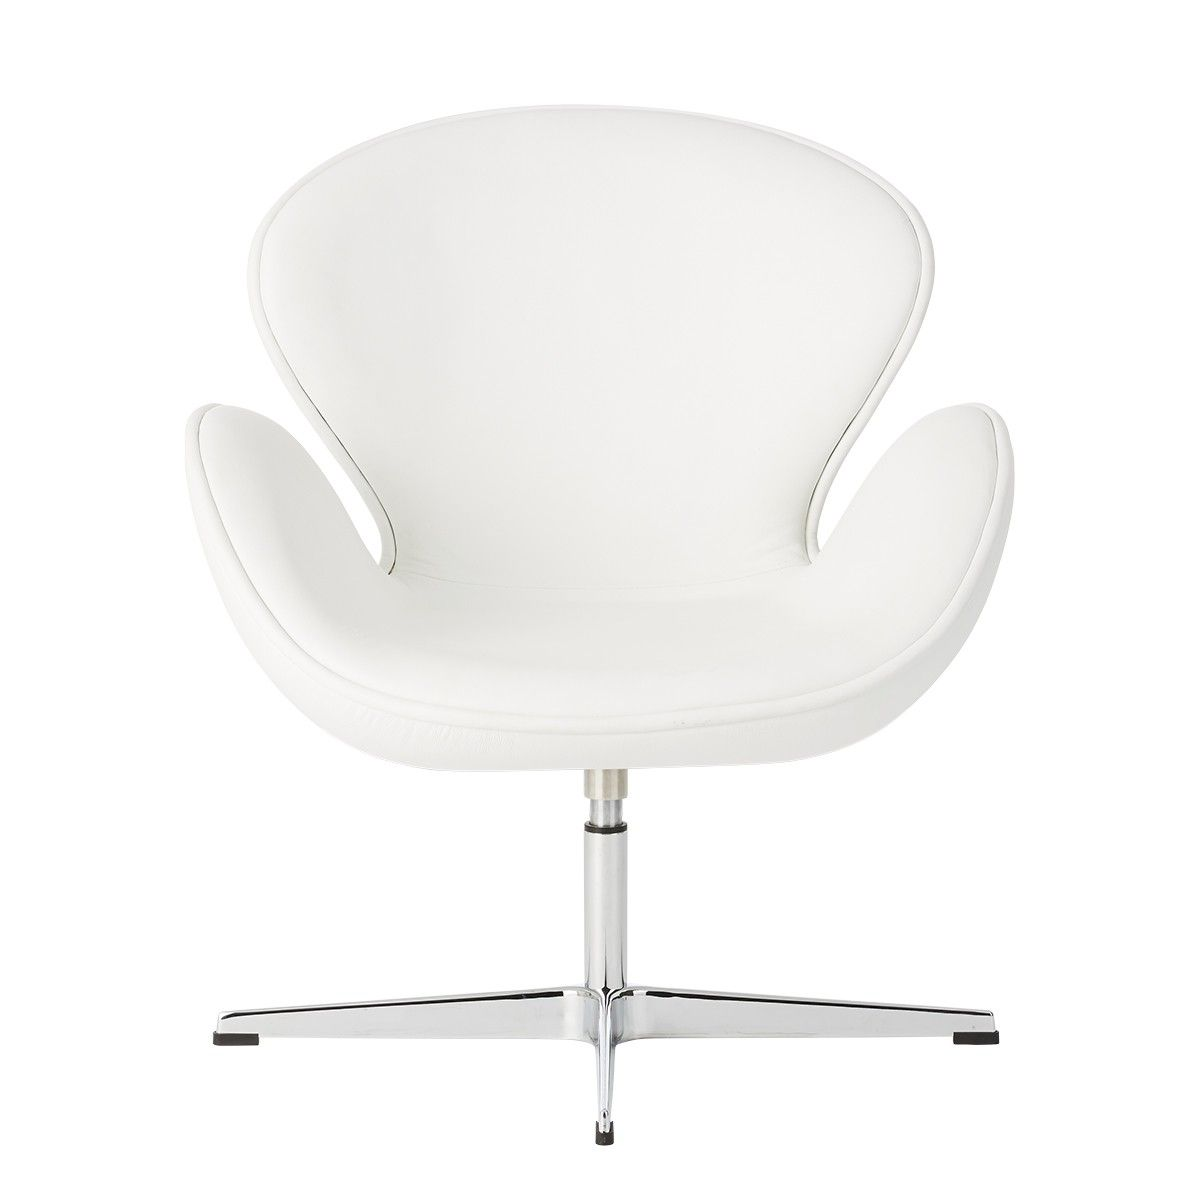 Replica Arne Jacobsen Swan Chair Italian Leather Replica Chairs